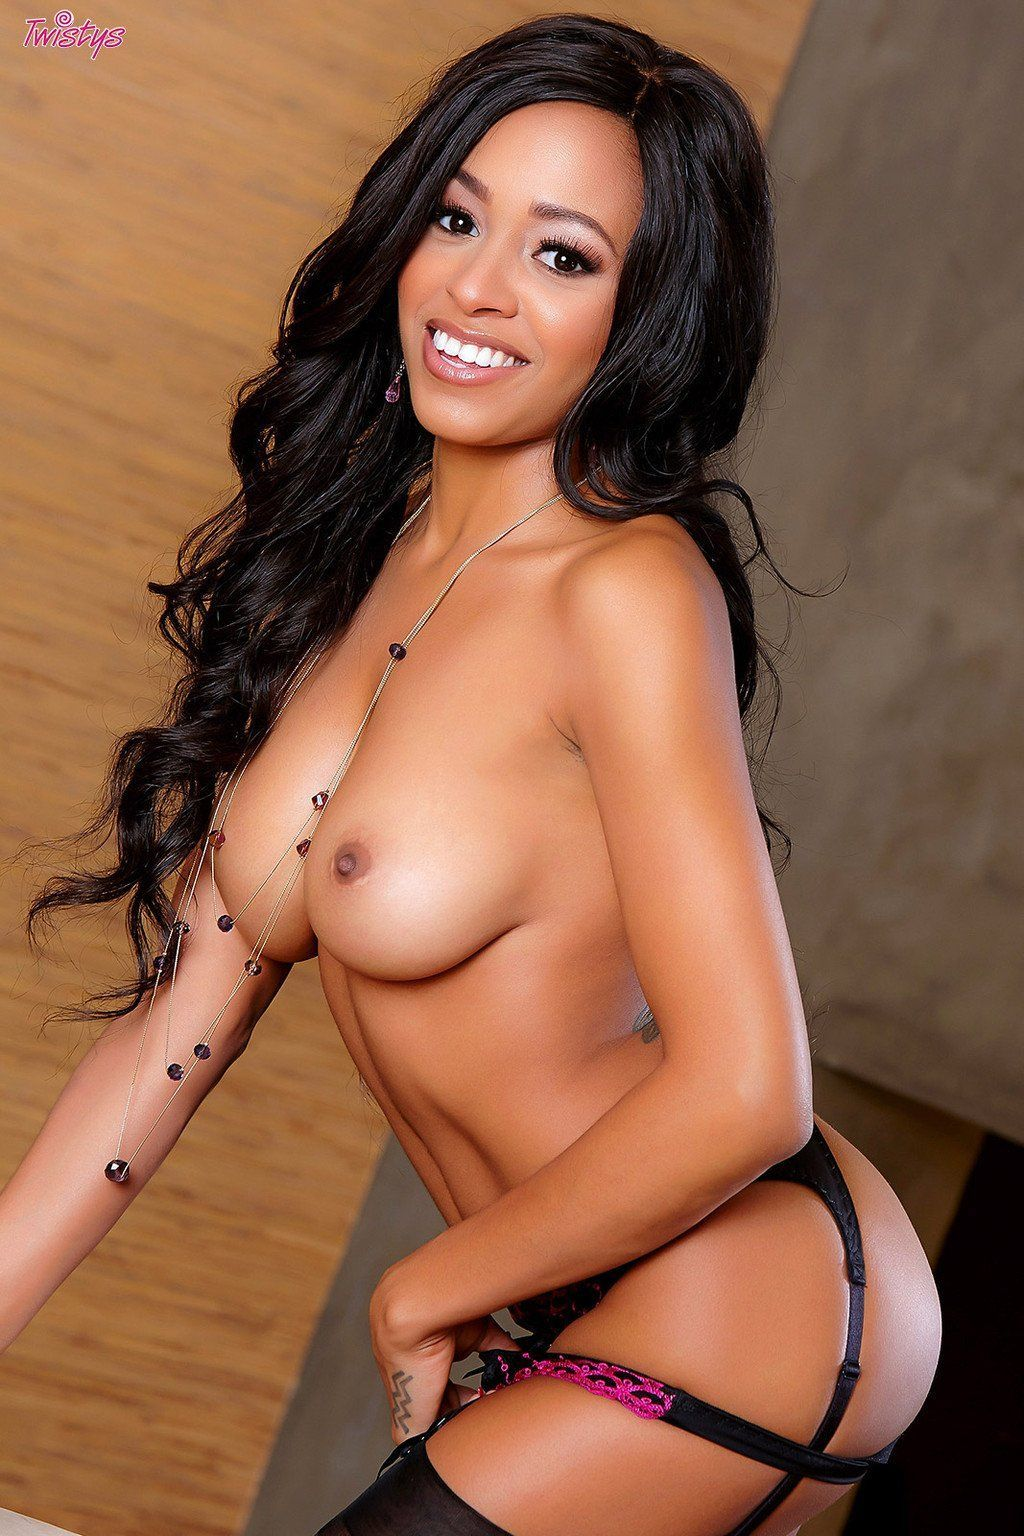 All the black female porn stars naked — pic 11